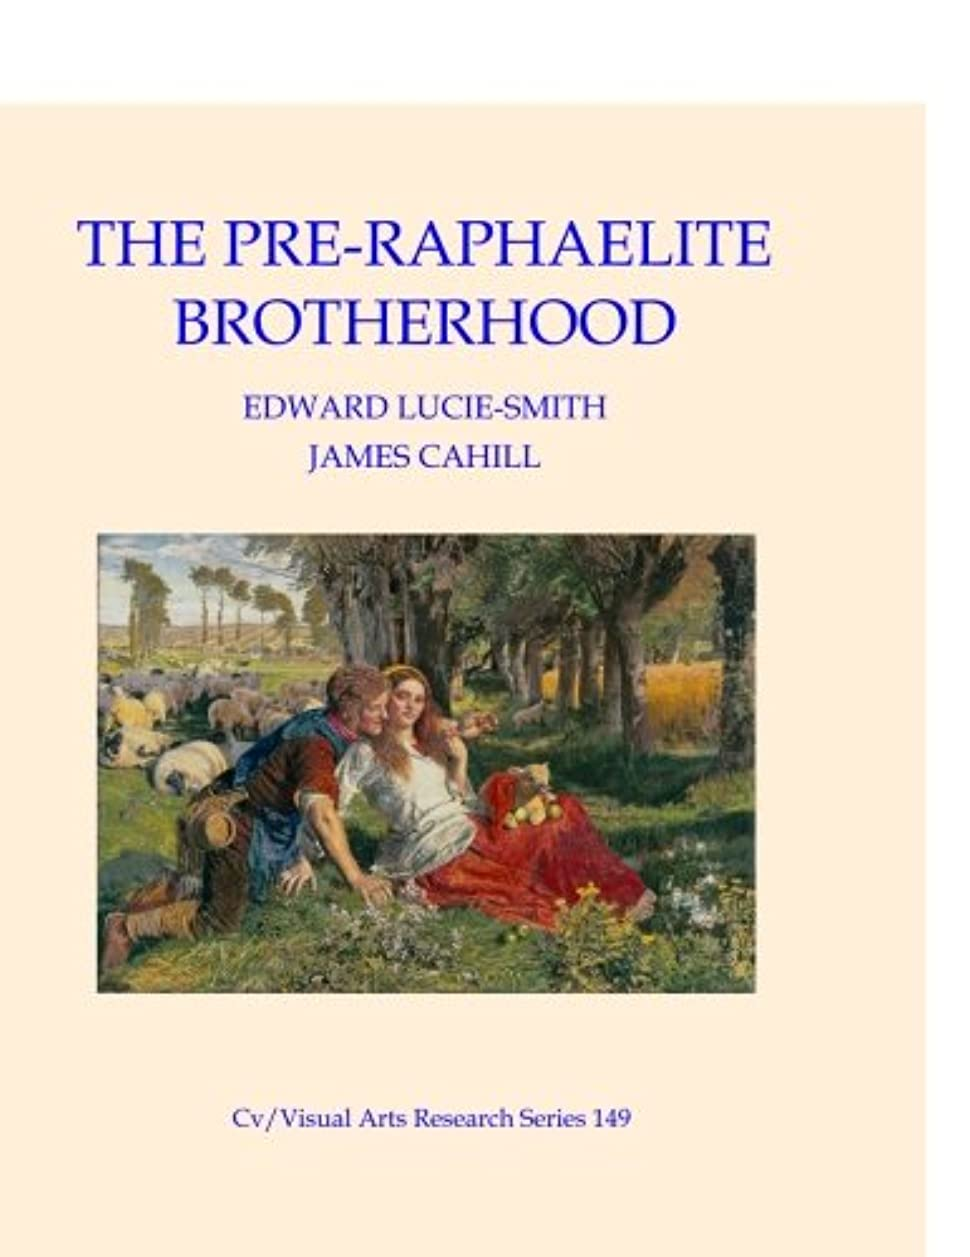 注ぎます剥離通信網The Pre-Raphaelite Brotherhood (CV/Visual Arts Research)